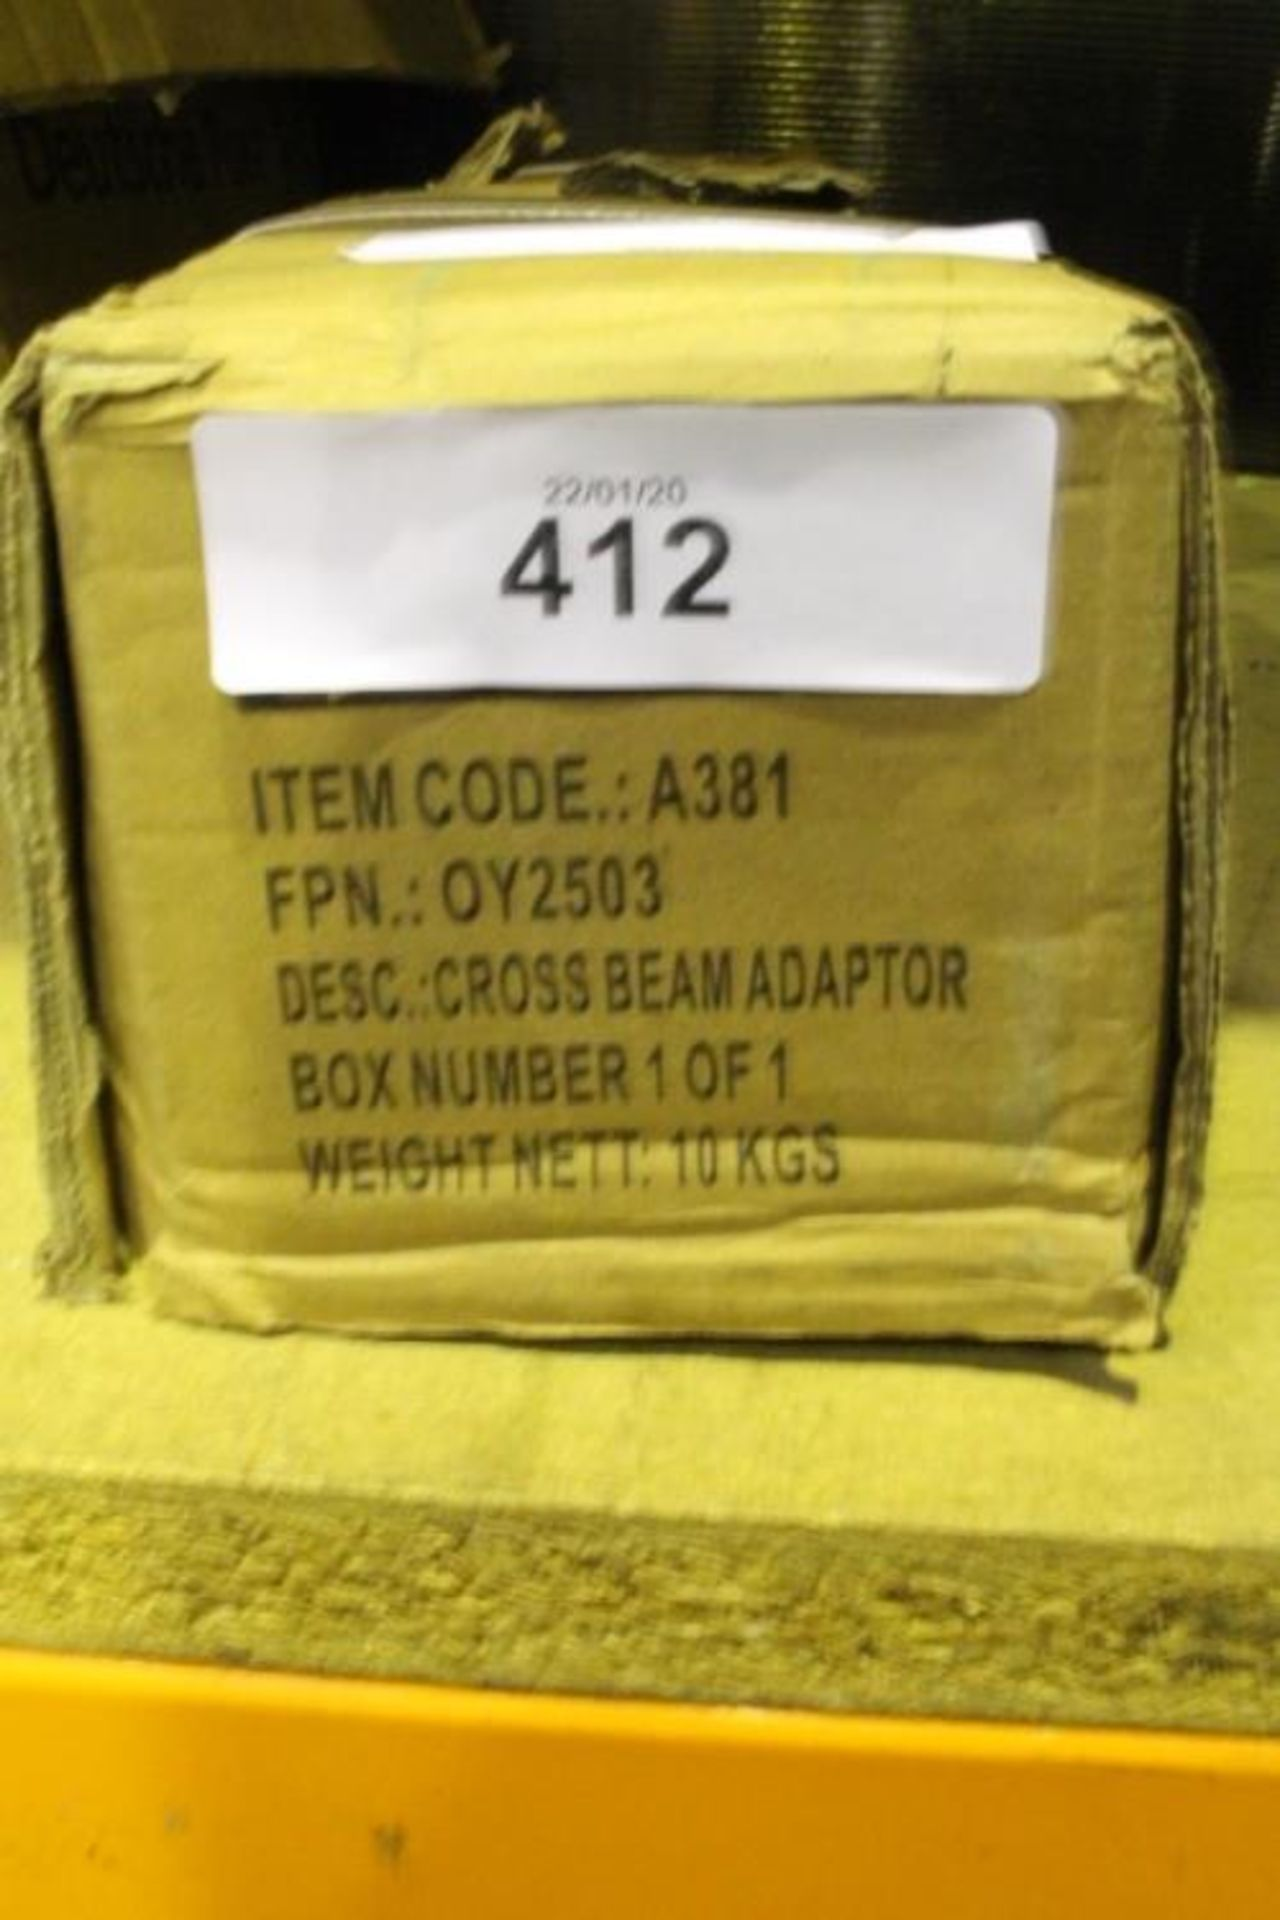 Lot 412 - Dirty Pro Tools cross beam adapter, model A381 - New (GS13)